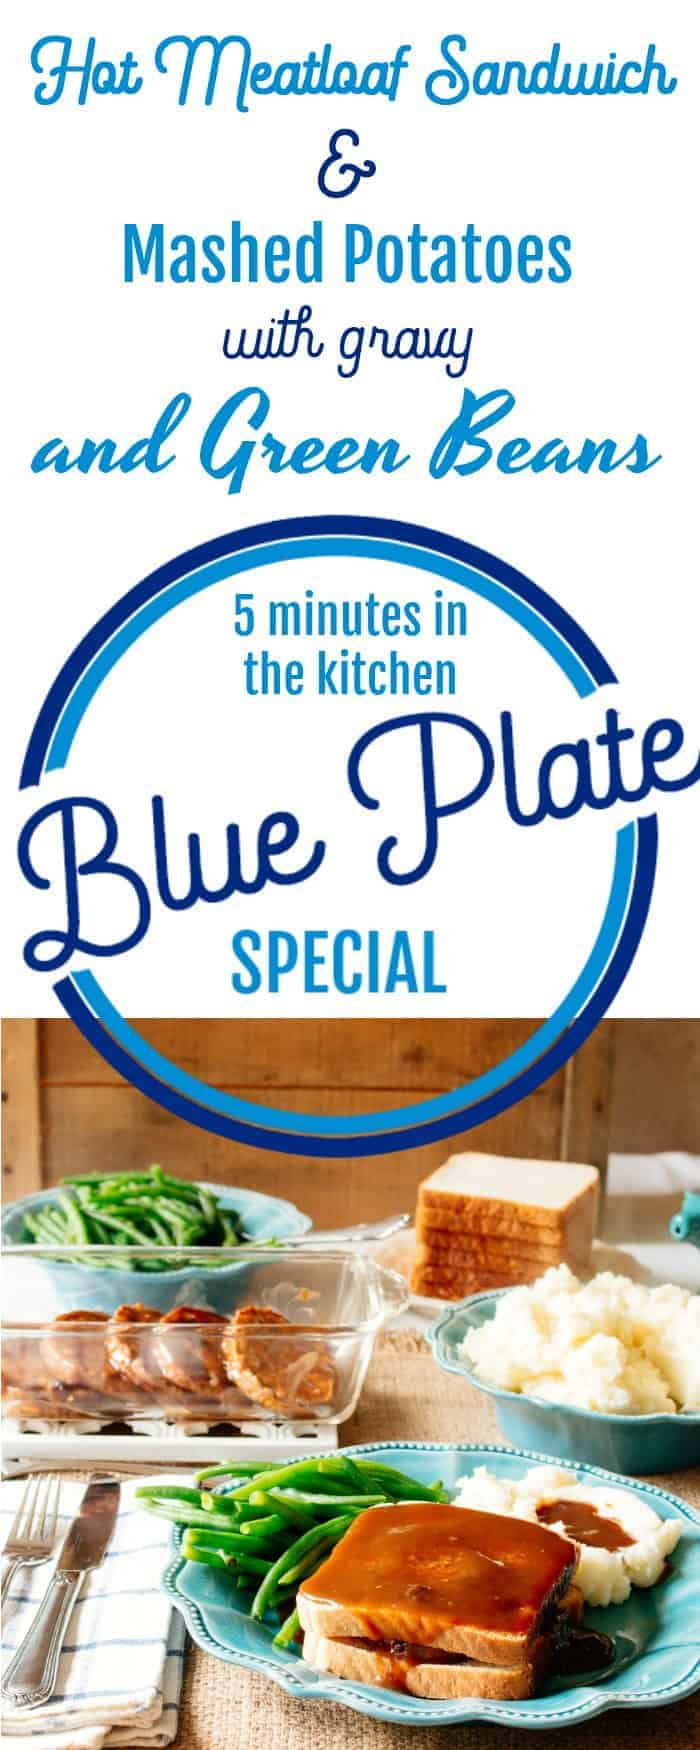 Blue Plate Special - 5 minutes in the kitchen Hot Meatloaf Sandwich, Mashed Potatoes with Gravy and Green Beans